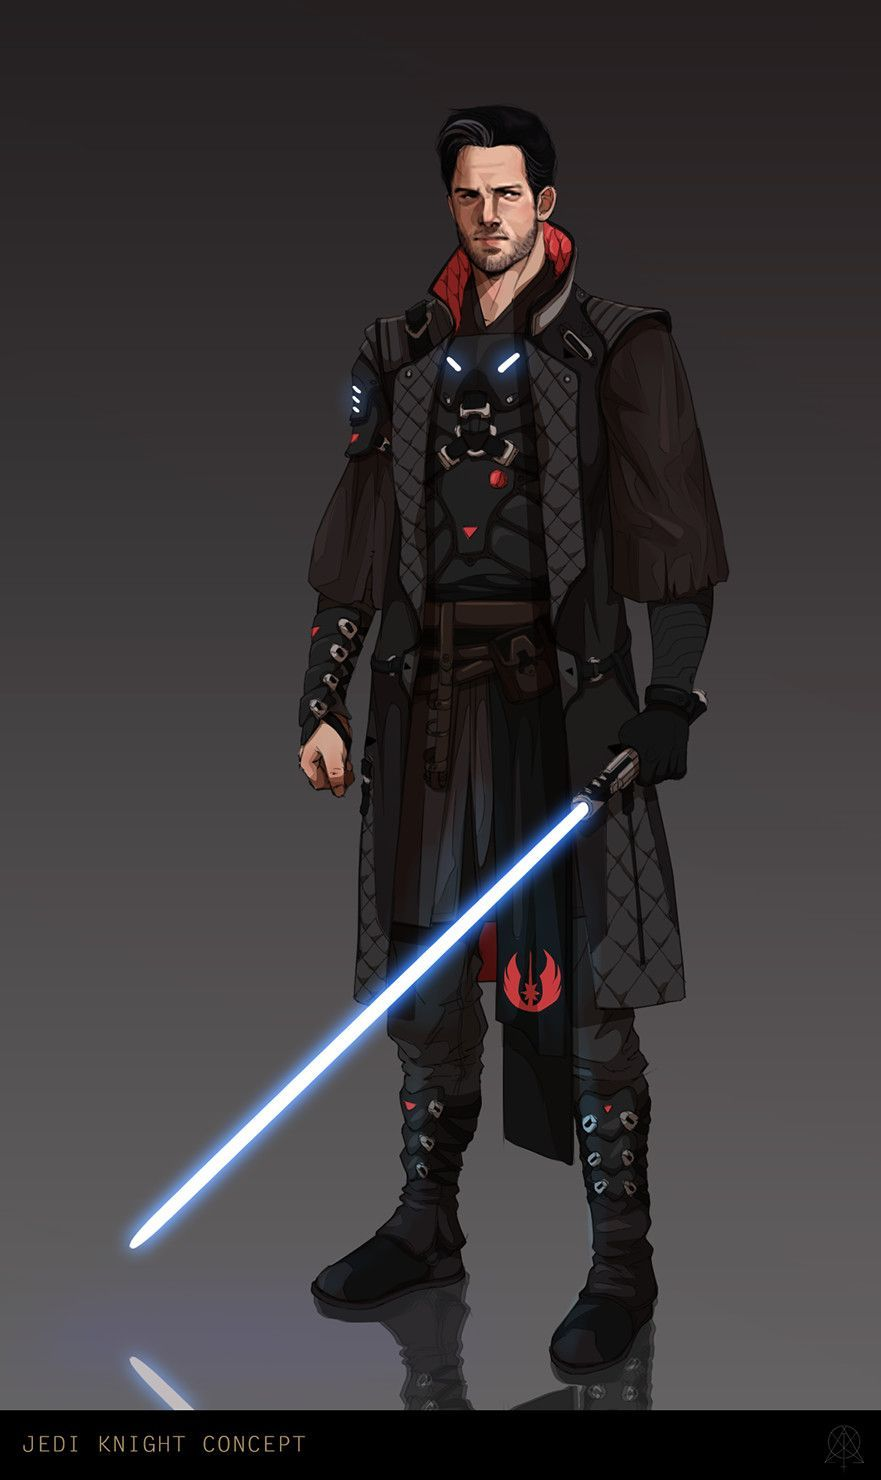 A Wandering Swordsman His Blade For Hire Jedi Star Wars